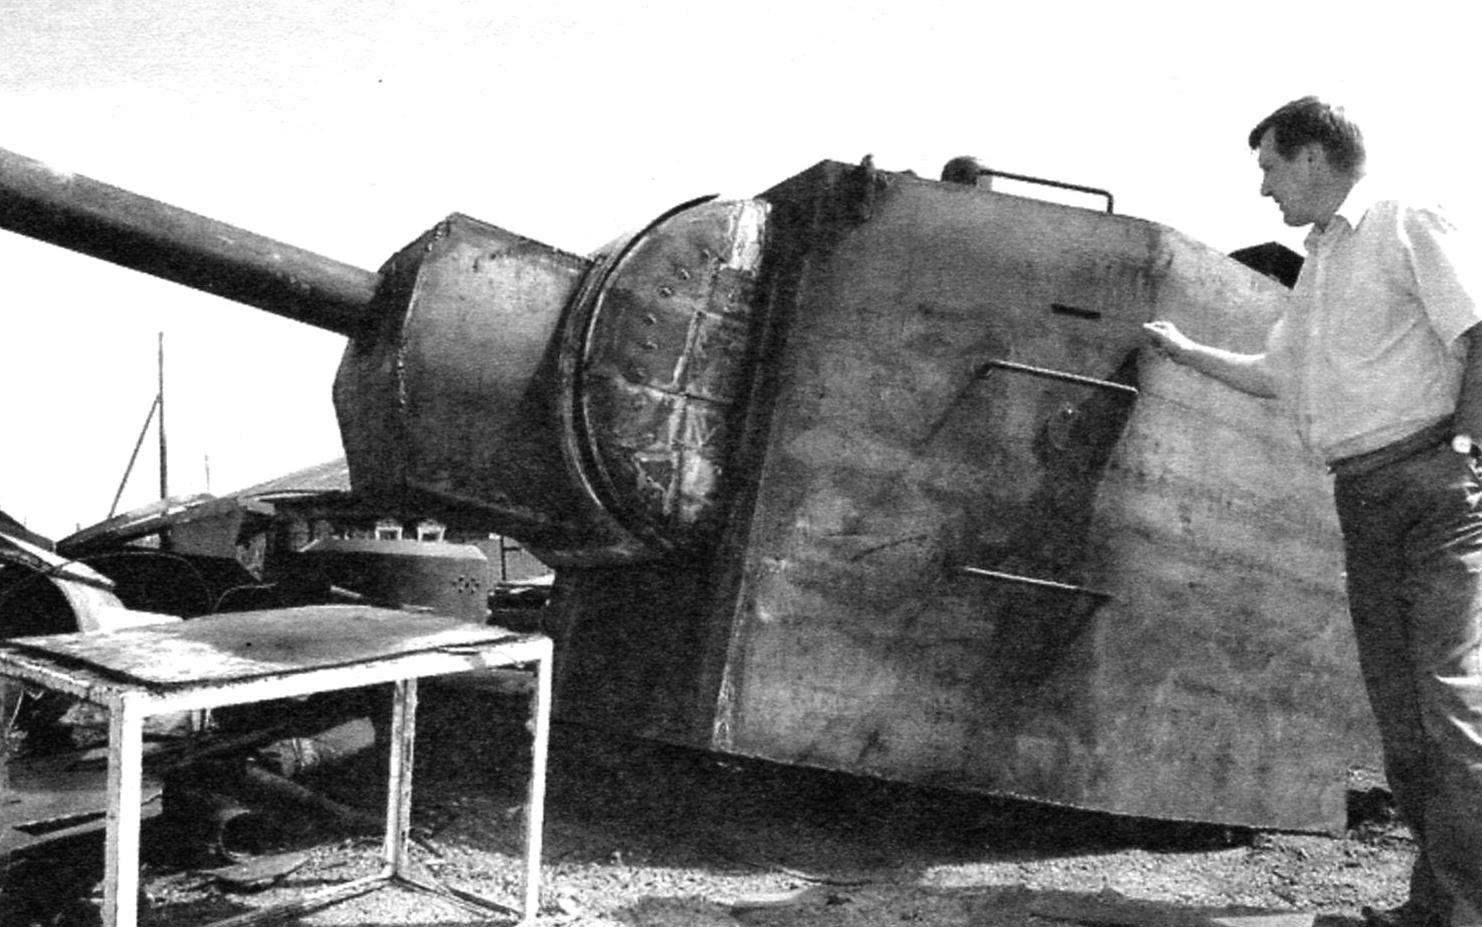 The tower of the KV-2 was already struck by its size - its height was equal to 1.79 m. the Internal dimensions of the tower: lenght - 2400 mm, width -1745 mm. For comparison, standing next to a man had a height of about two meters. Turret - a private Museum exhibit designer V. Verevochkin, Novosibirsk